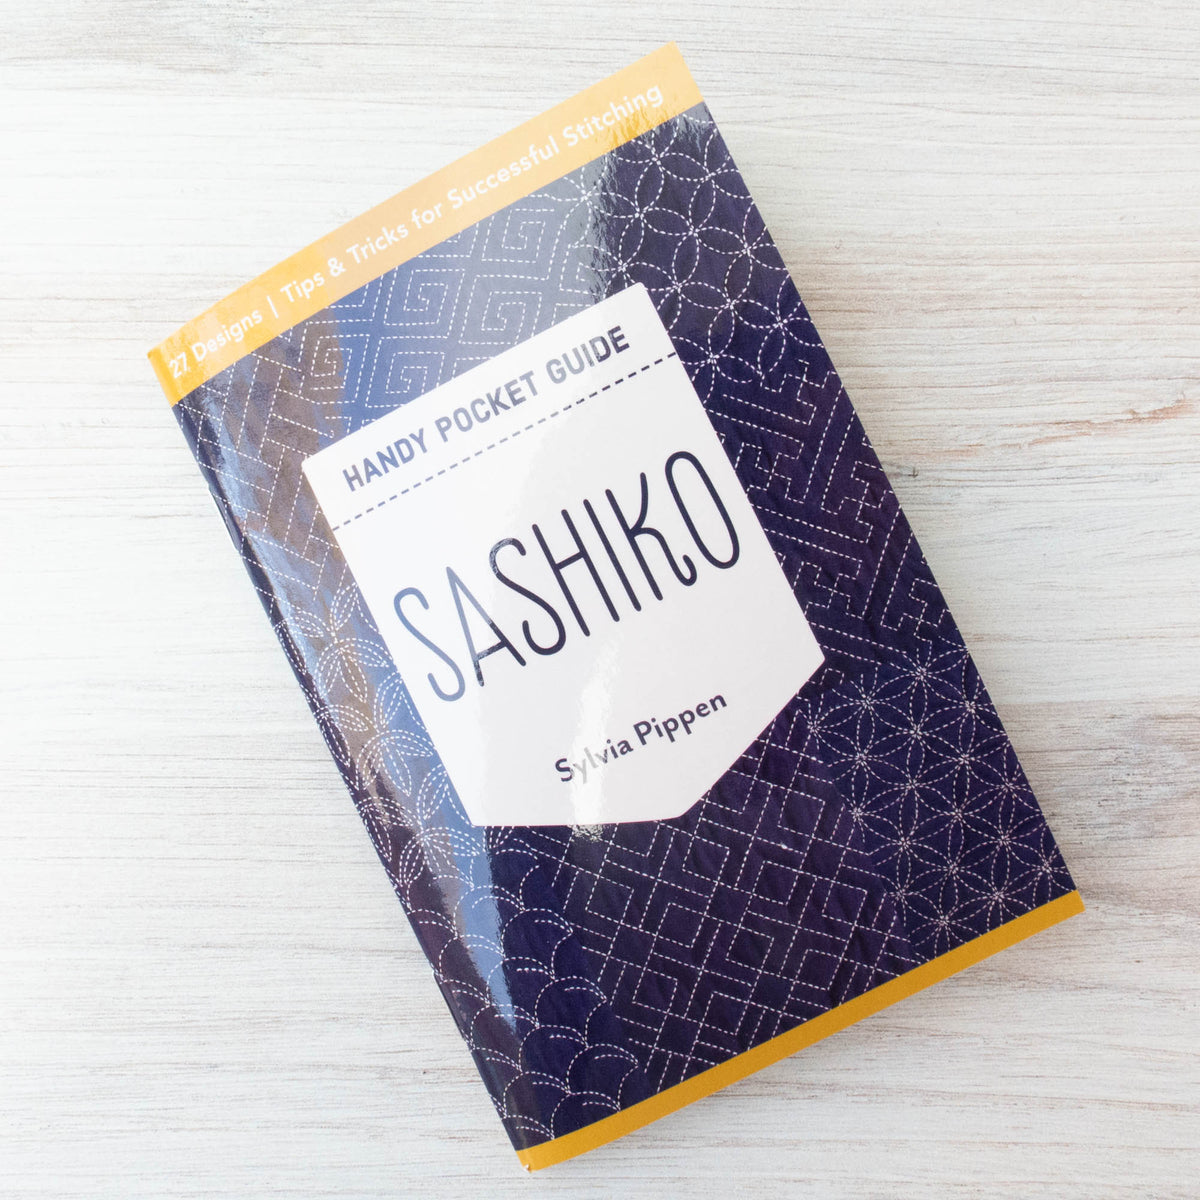 Sashiko Handy Pocket Guide Patterns - Snuggly Monkey